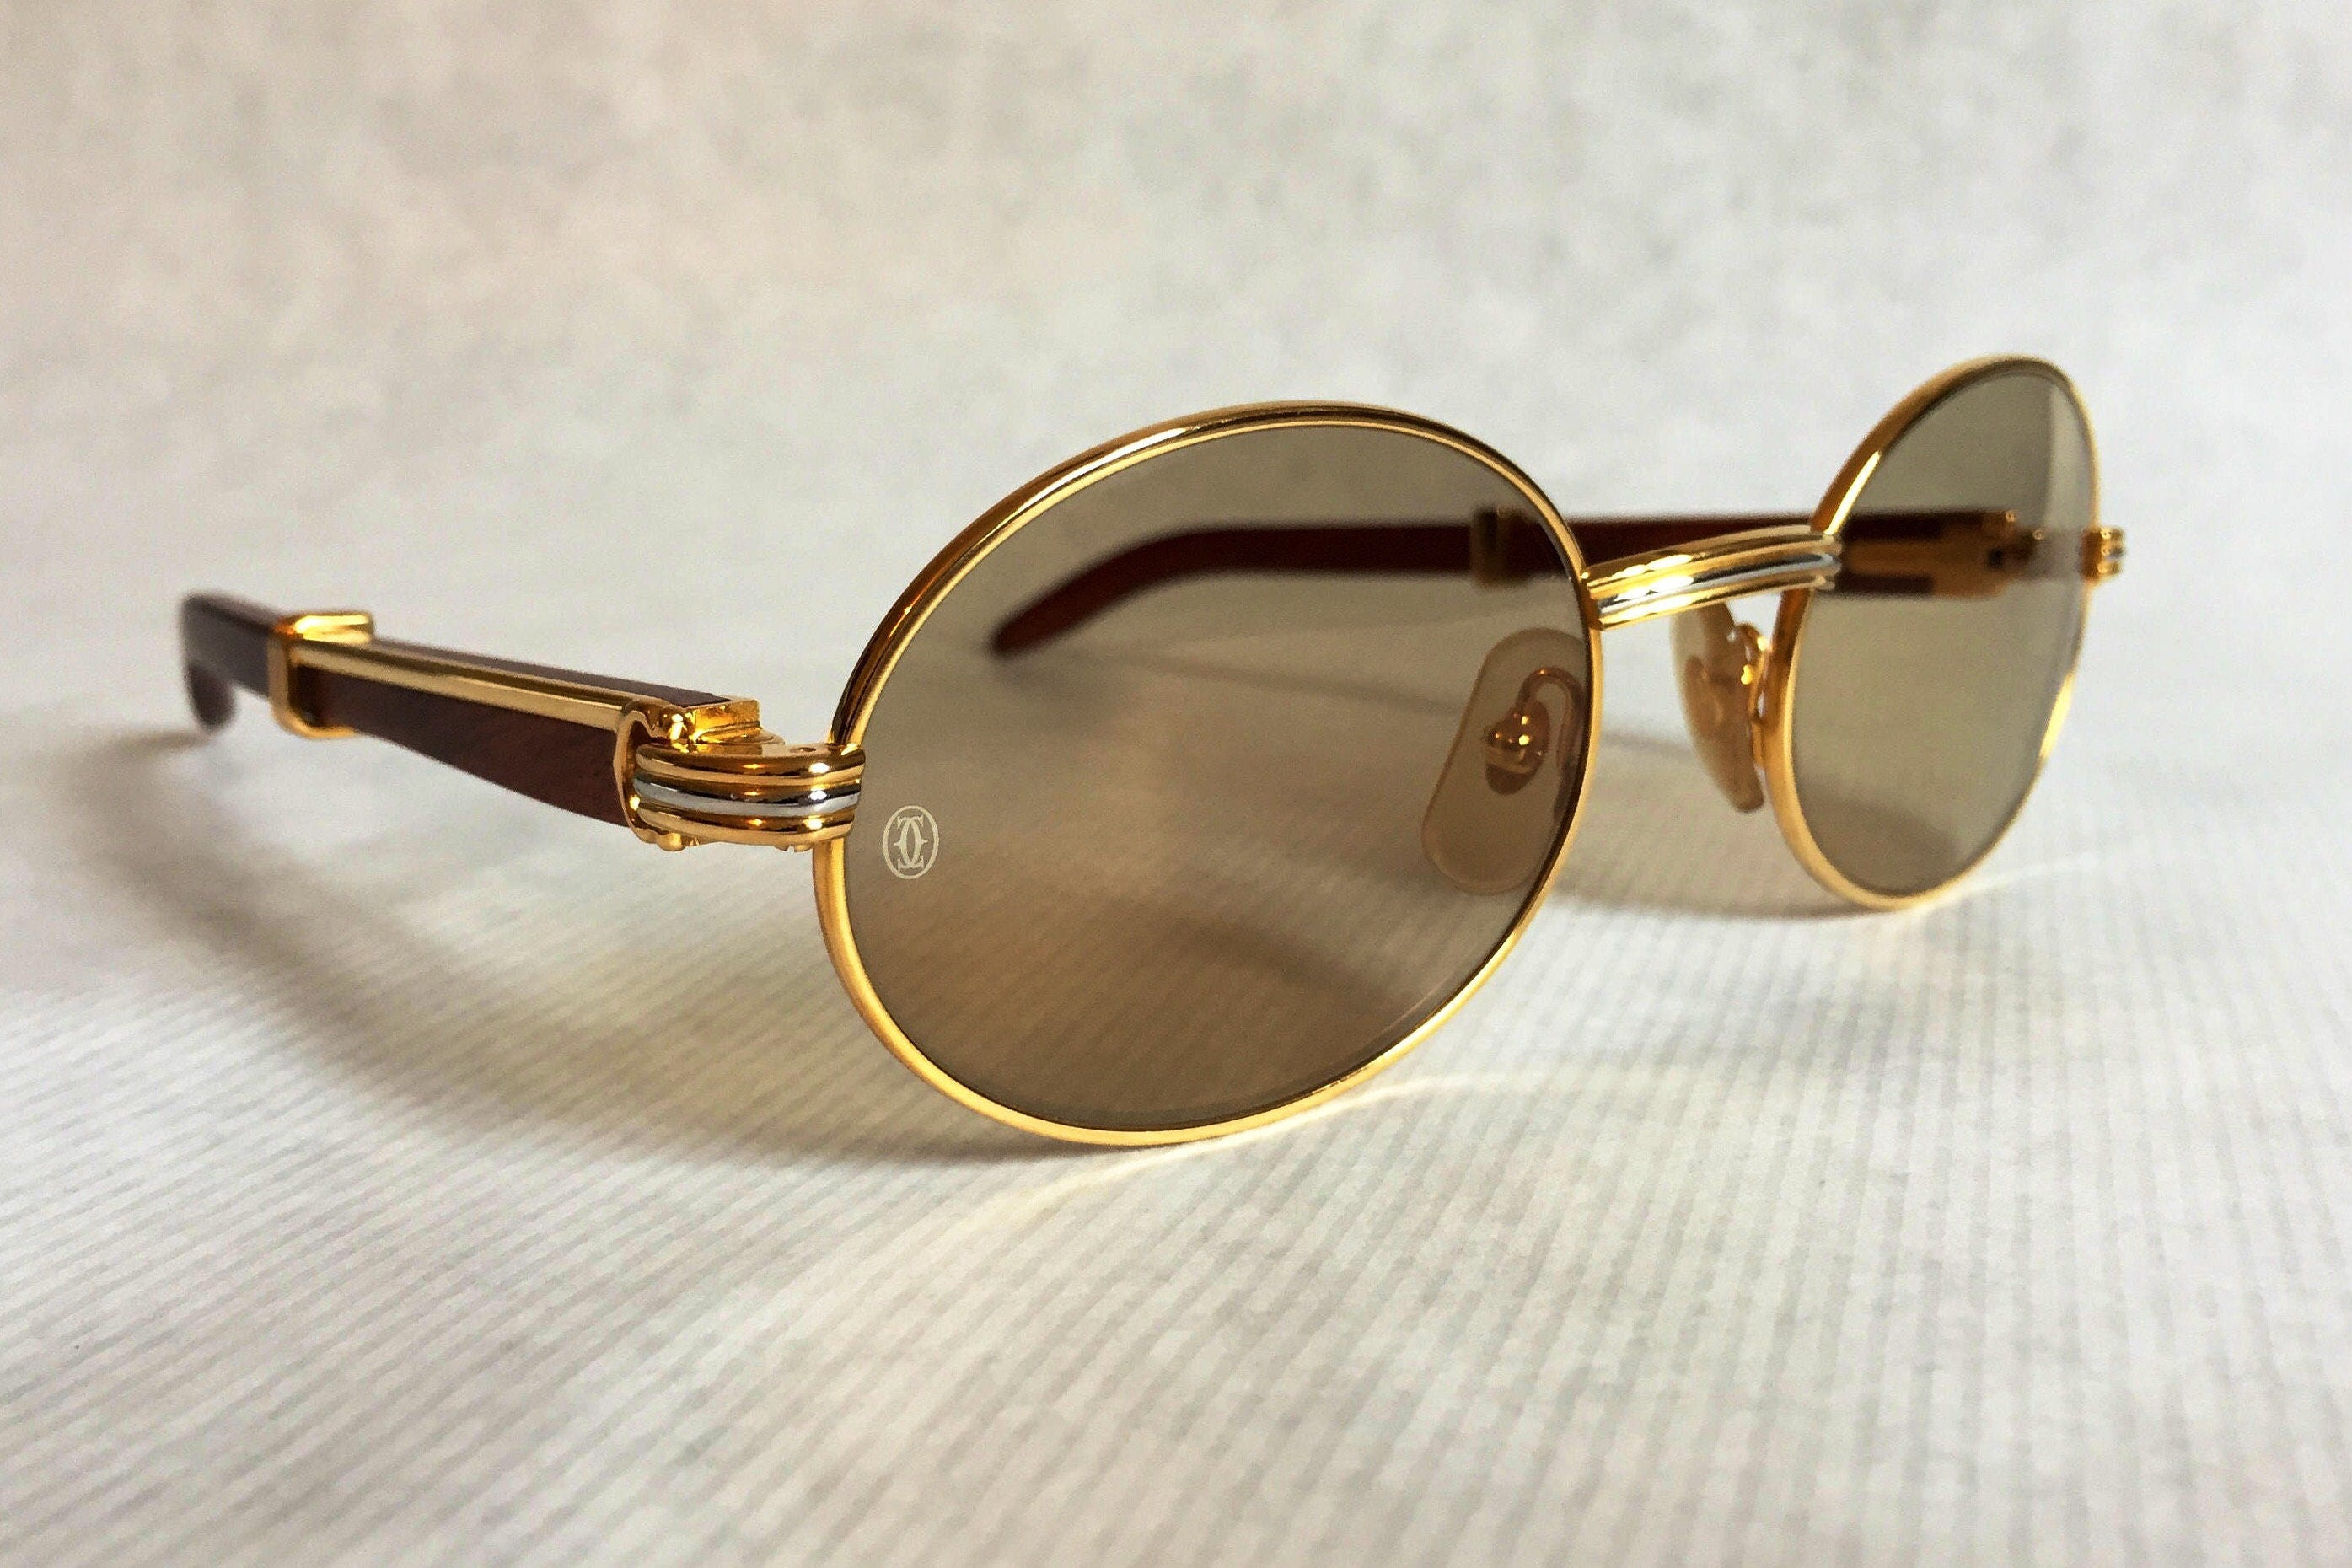 546b070cb4aa Cartier Giverny Vintage Sunglasses - Large Size - New Old Stock ...